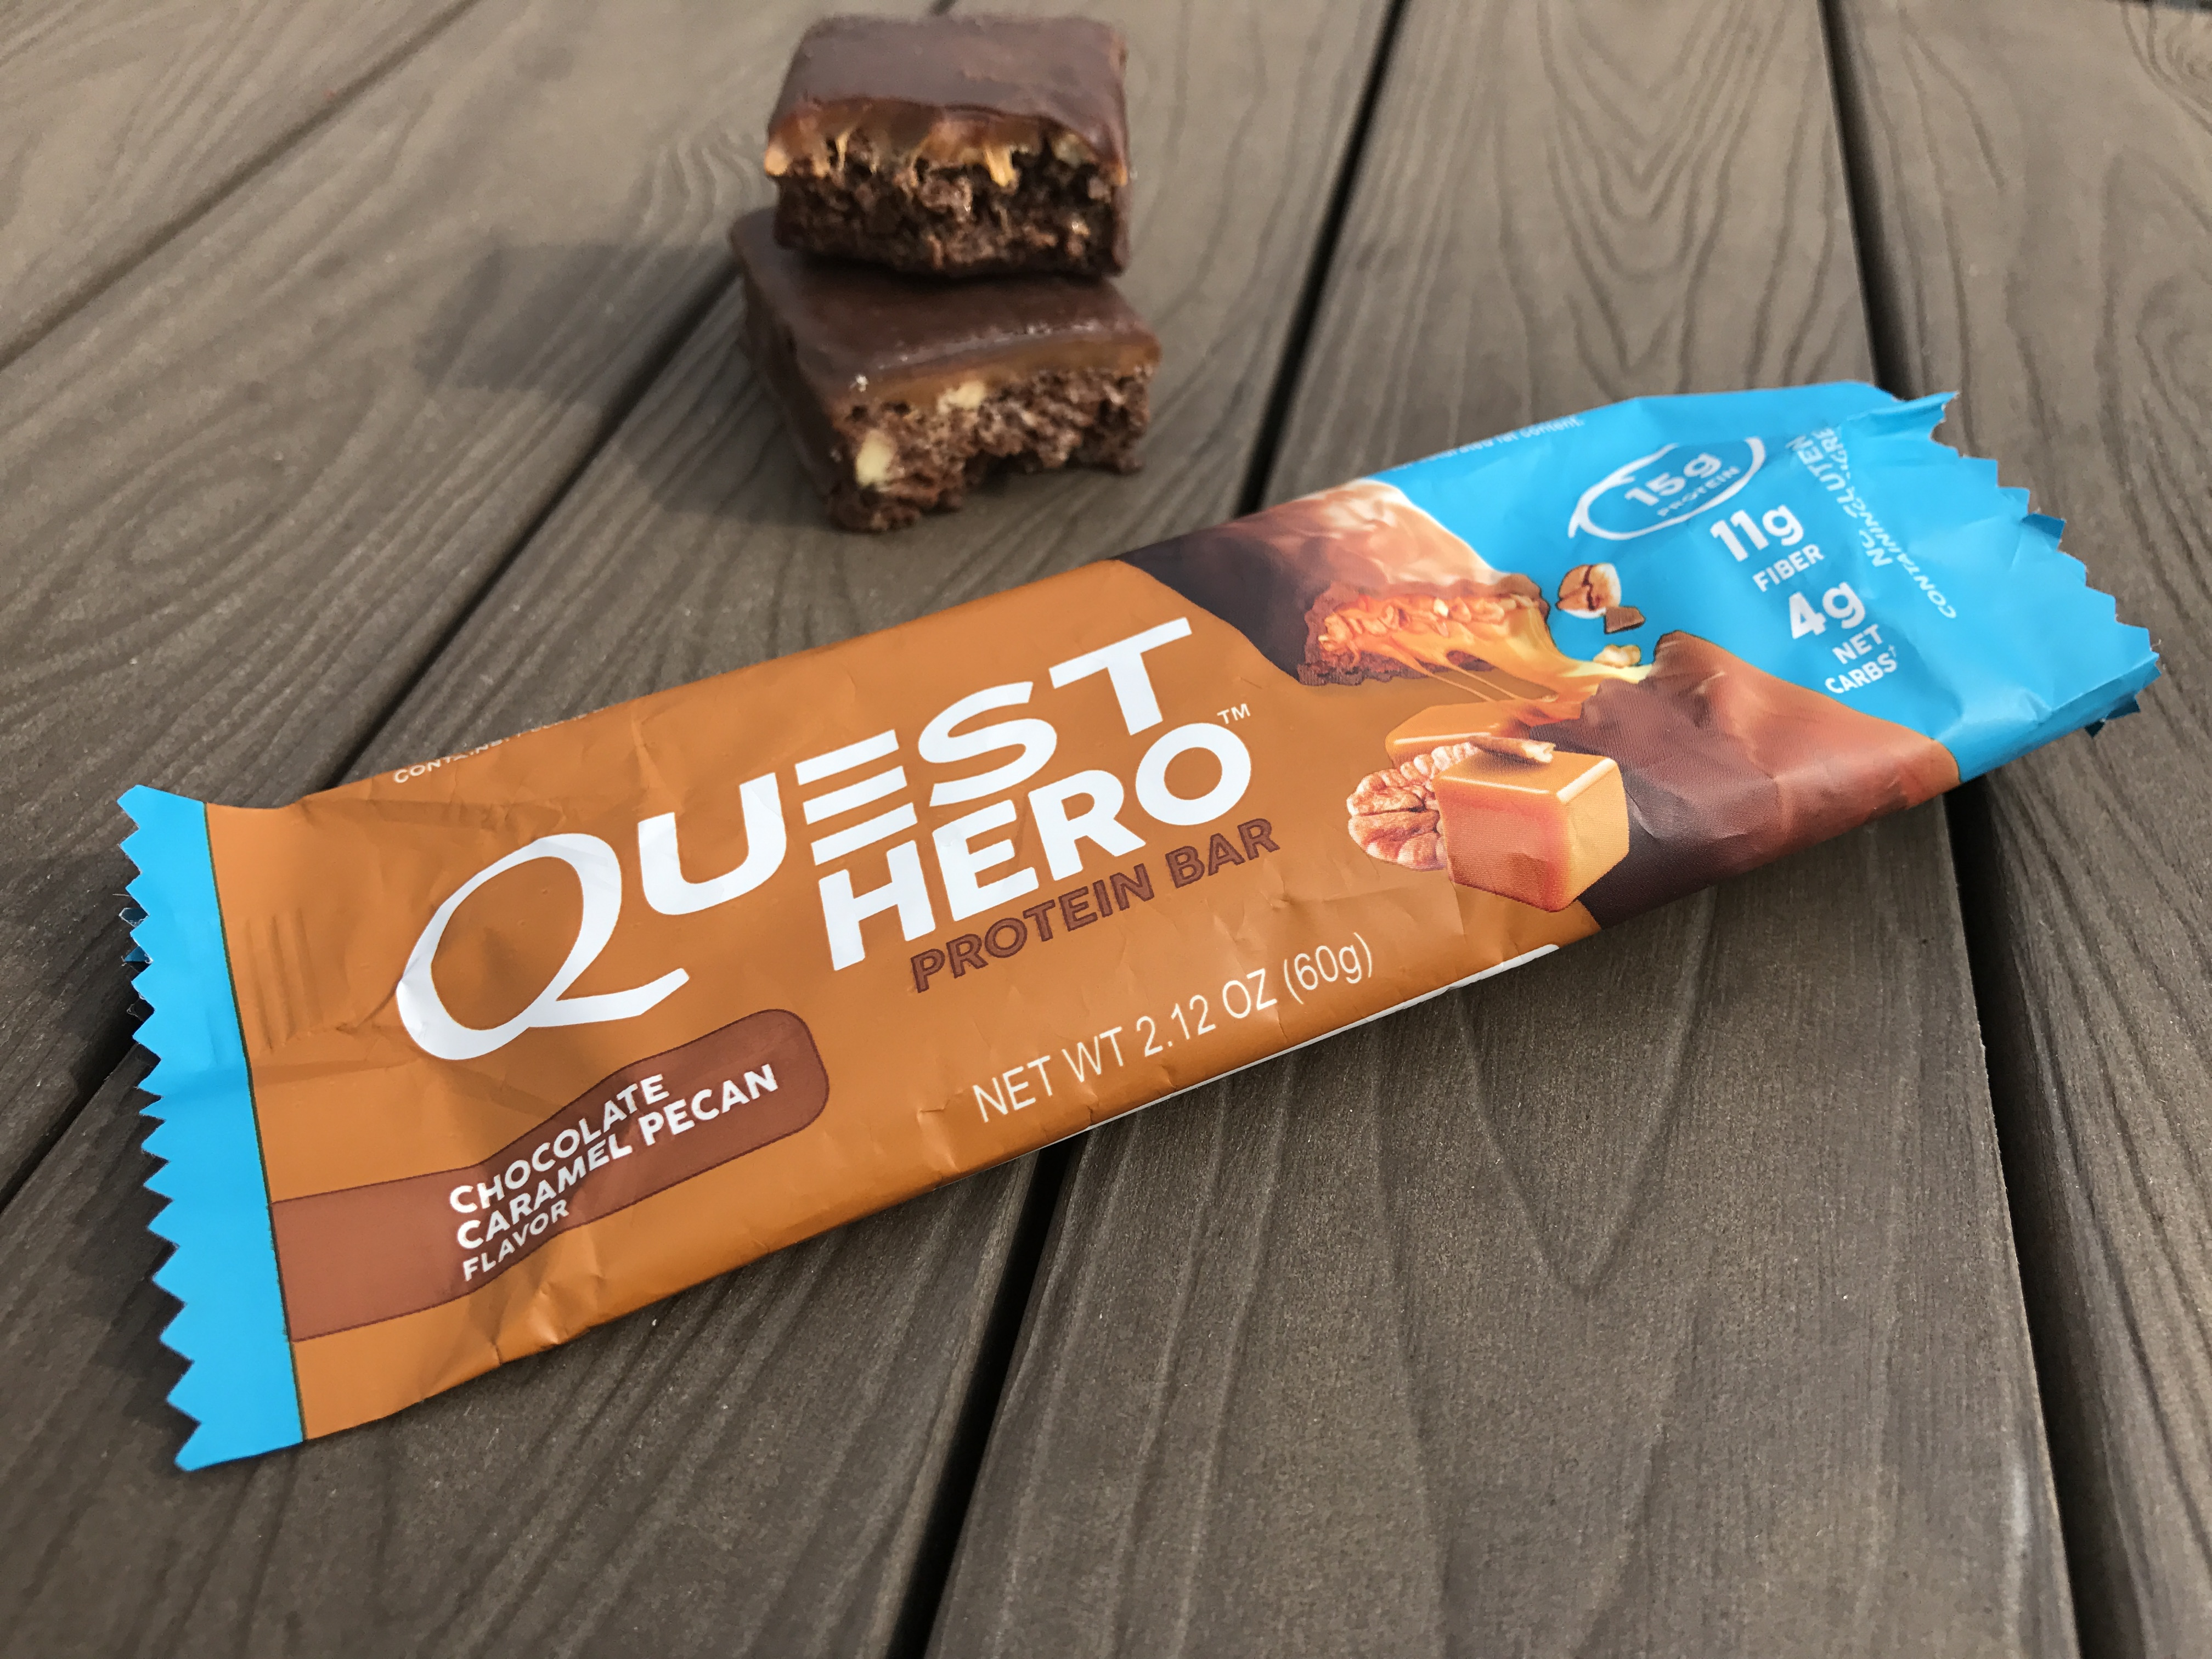 How are quest bars made